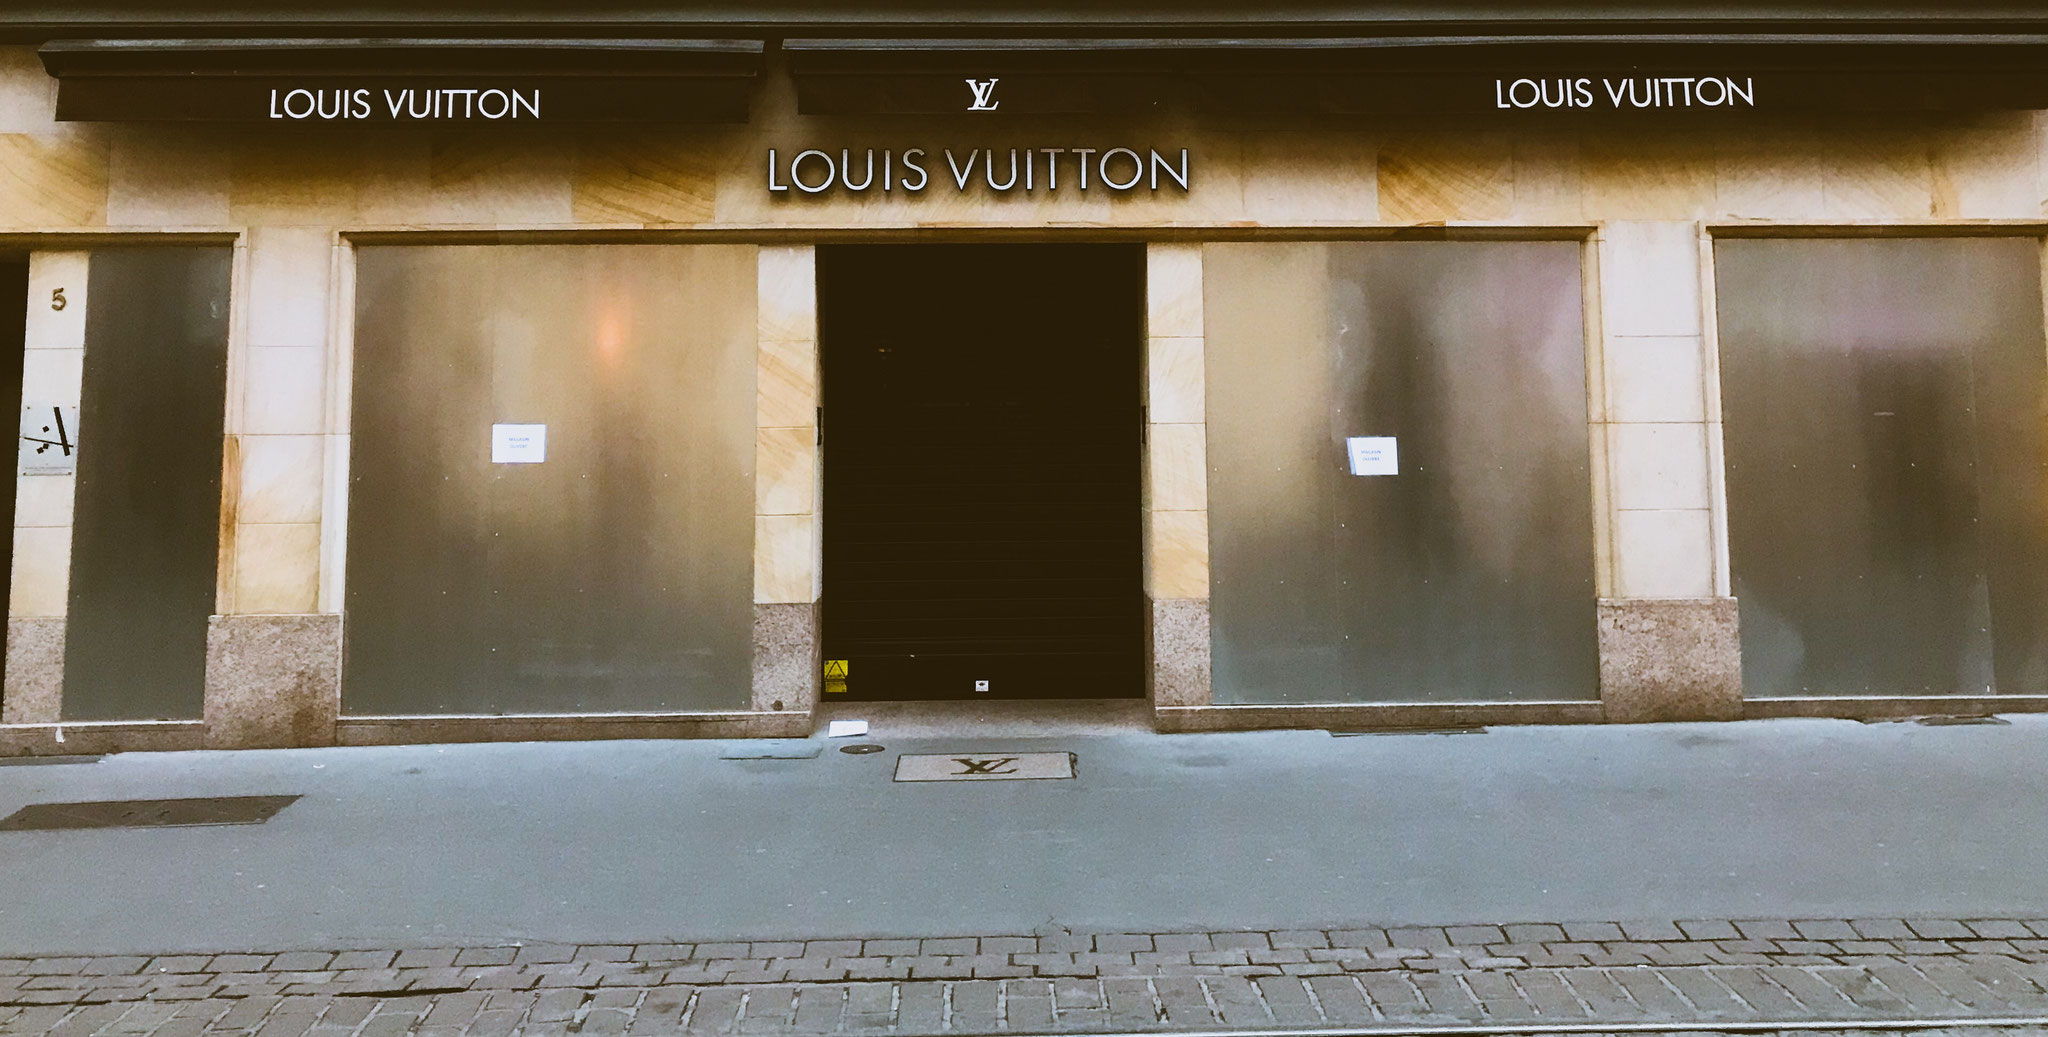 Louis Vuitton Ladenfront während Demo in Straßburg / Louis Vuitton closed storefront Straßburg